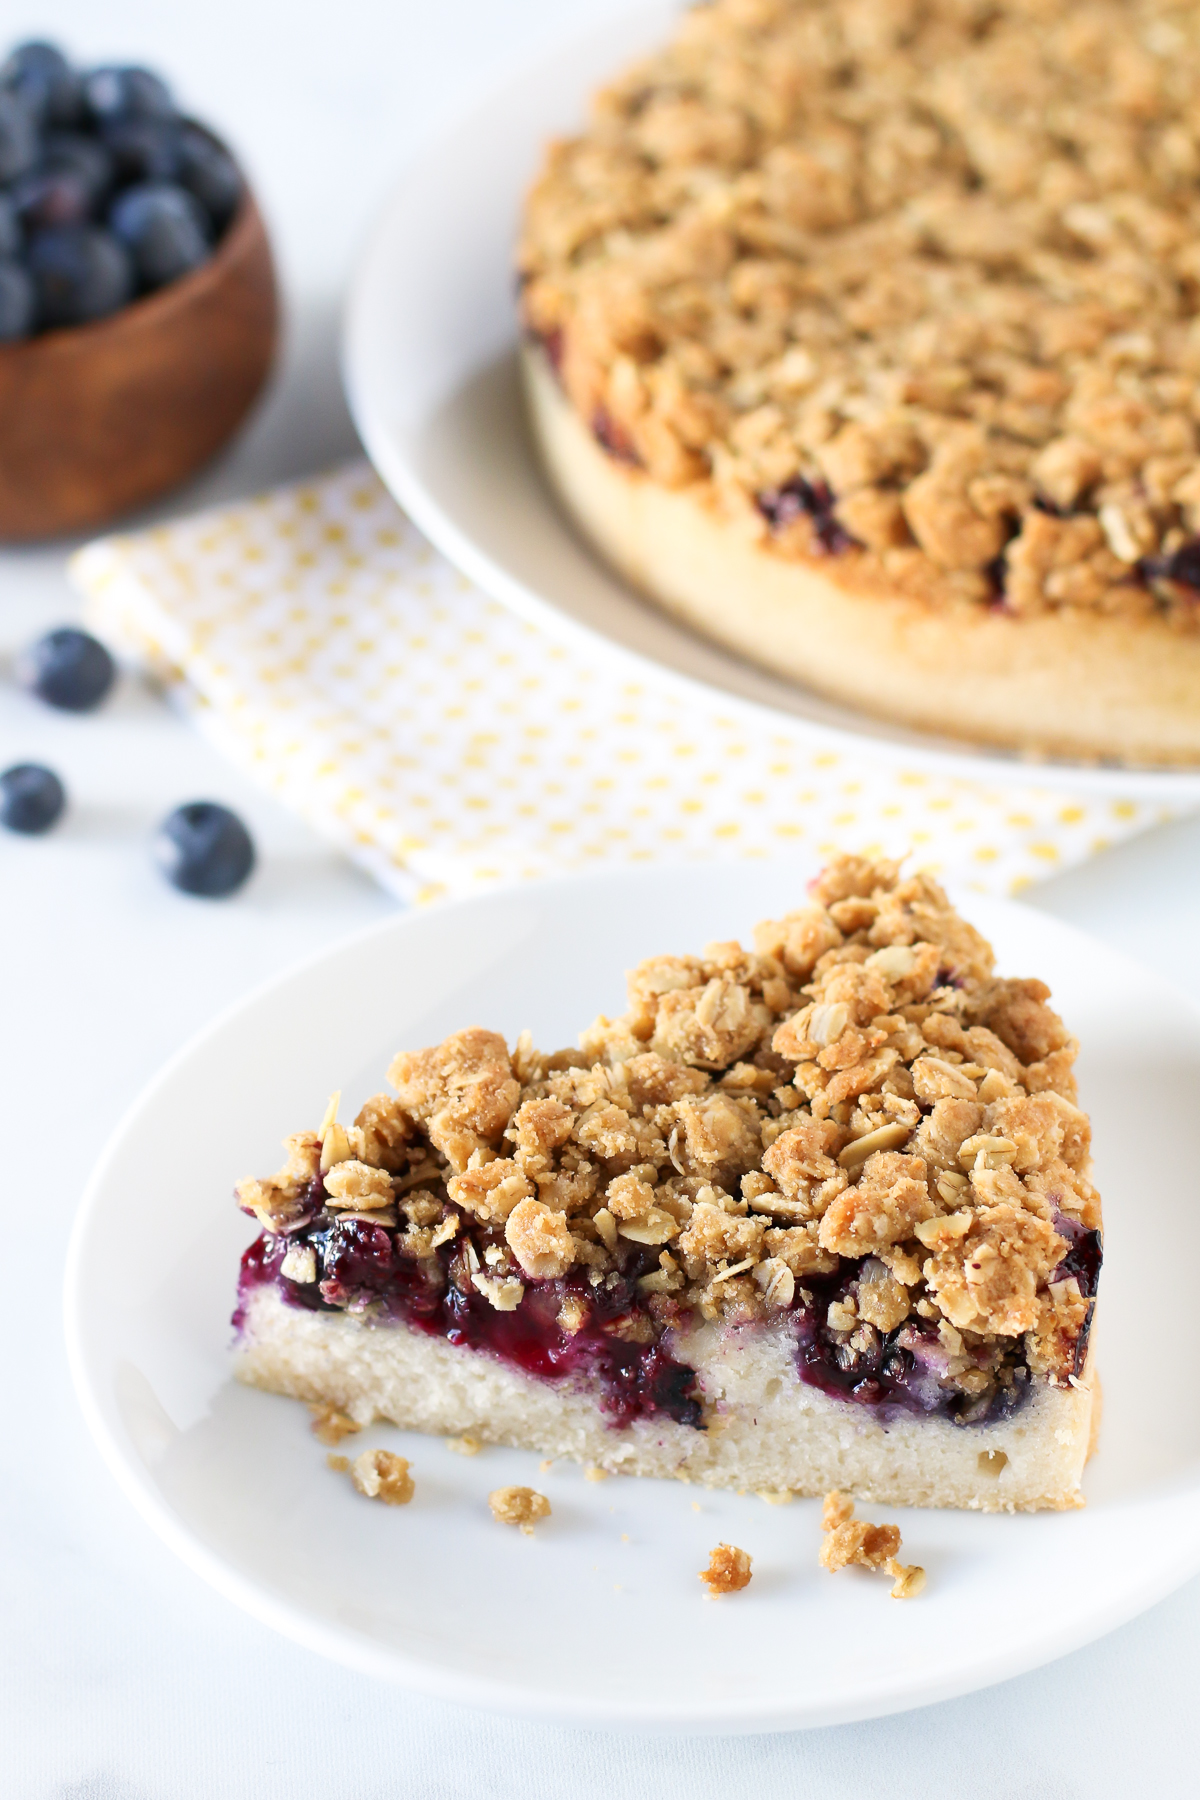 Gluten Free Vegan Blueberry Coffee Cake. Light vanilla cake with a layer of fresh, juicy blueberries and an oat crumb topping.